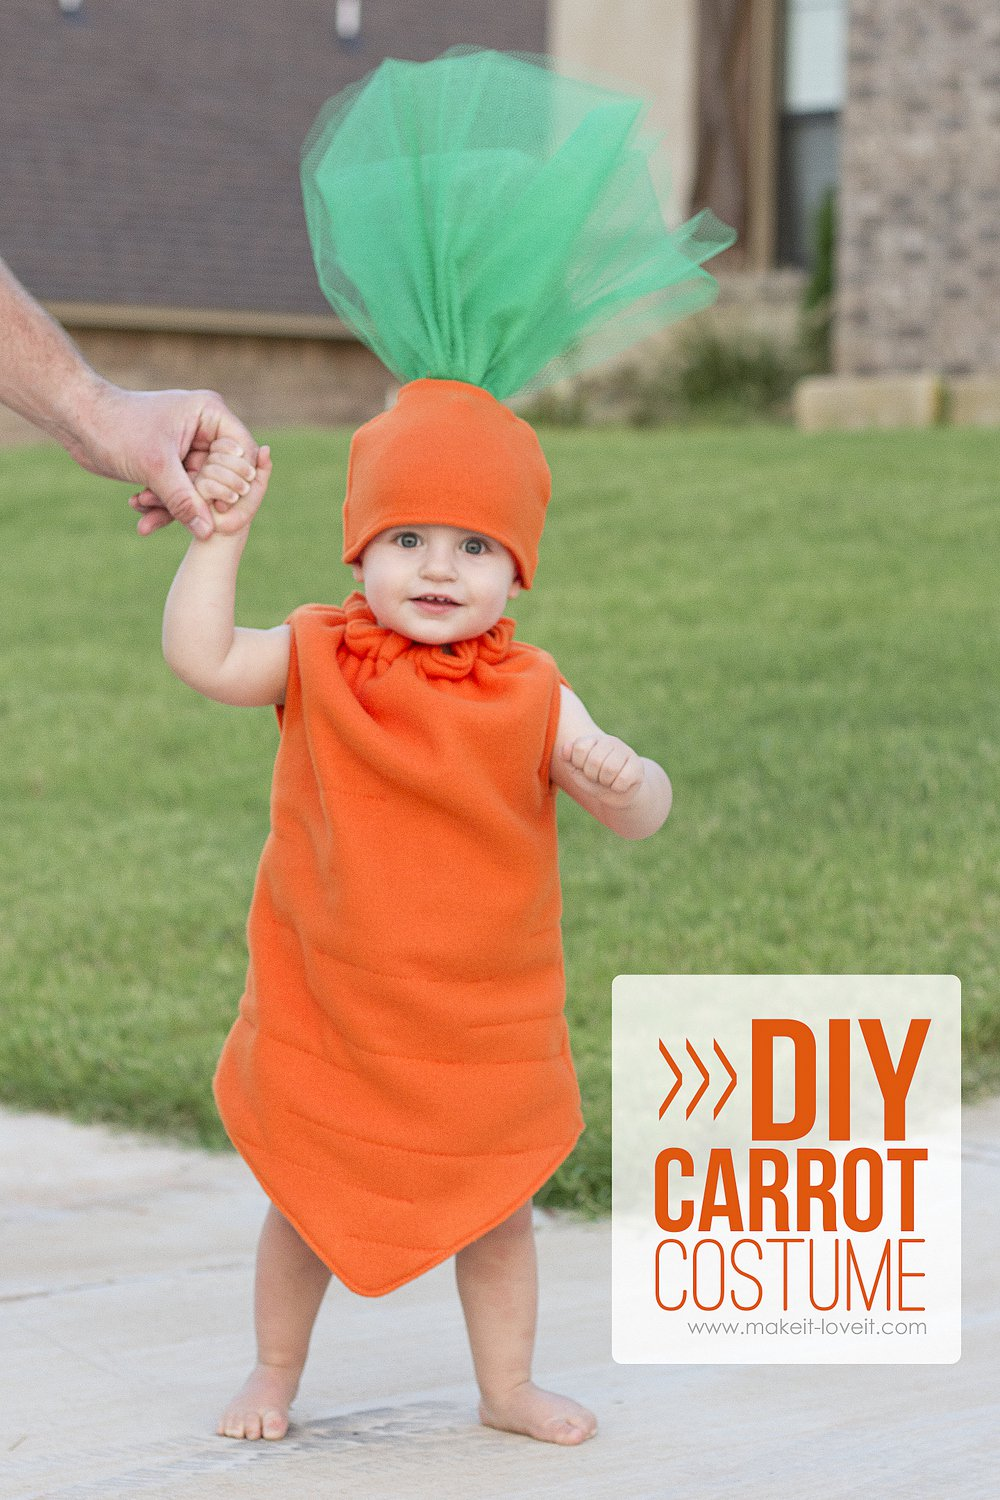 From bananas to tacos these 50 food costumes are easy to diy diy carrot costume solutioingenieria Images